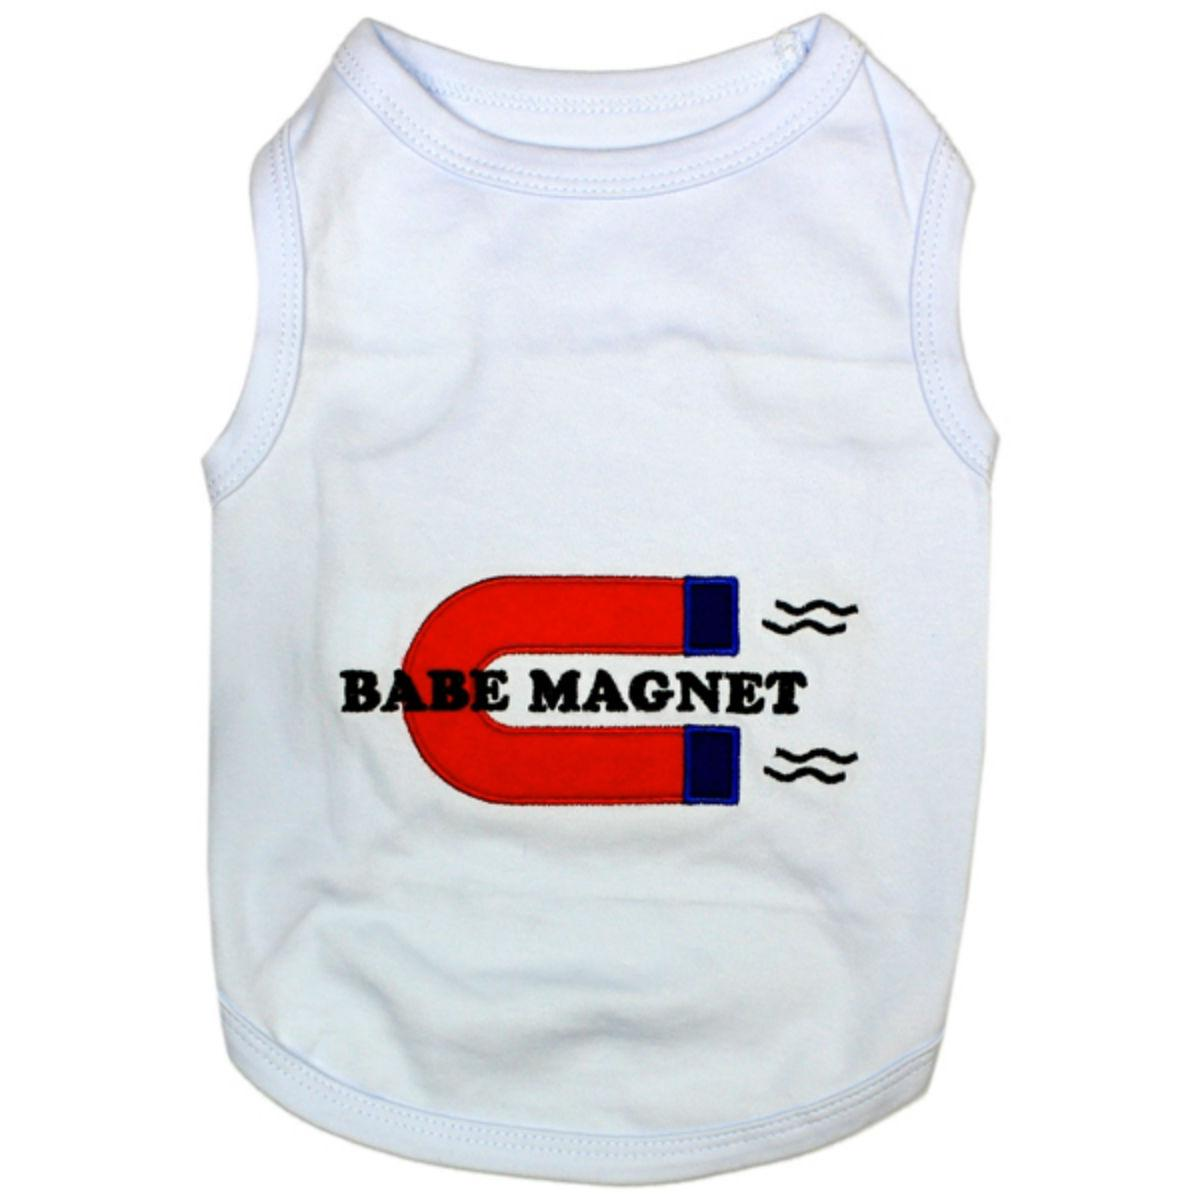 Babe Magnet Dog Tank by Parisian Pet - White